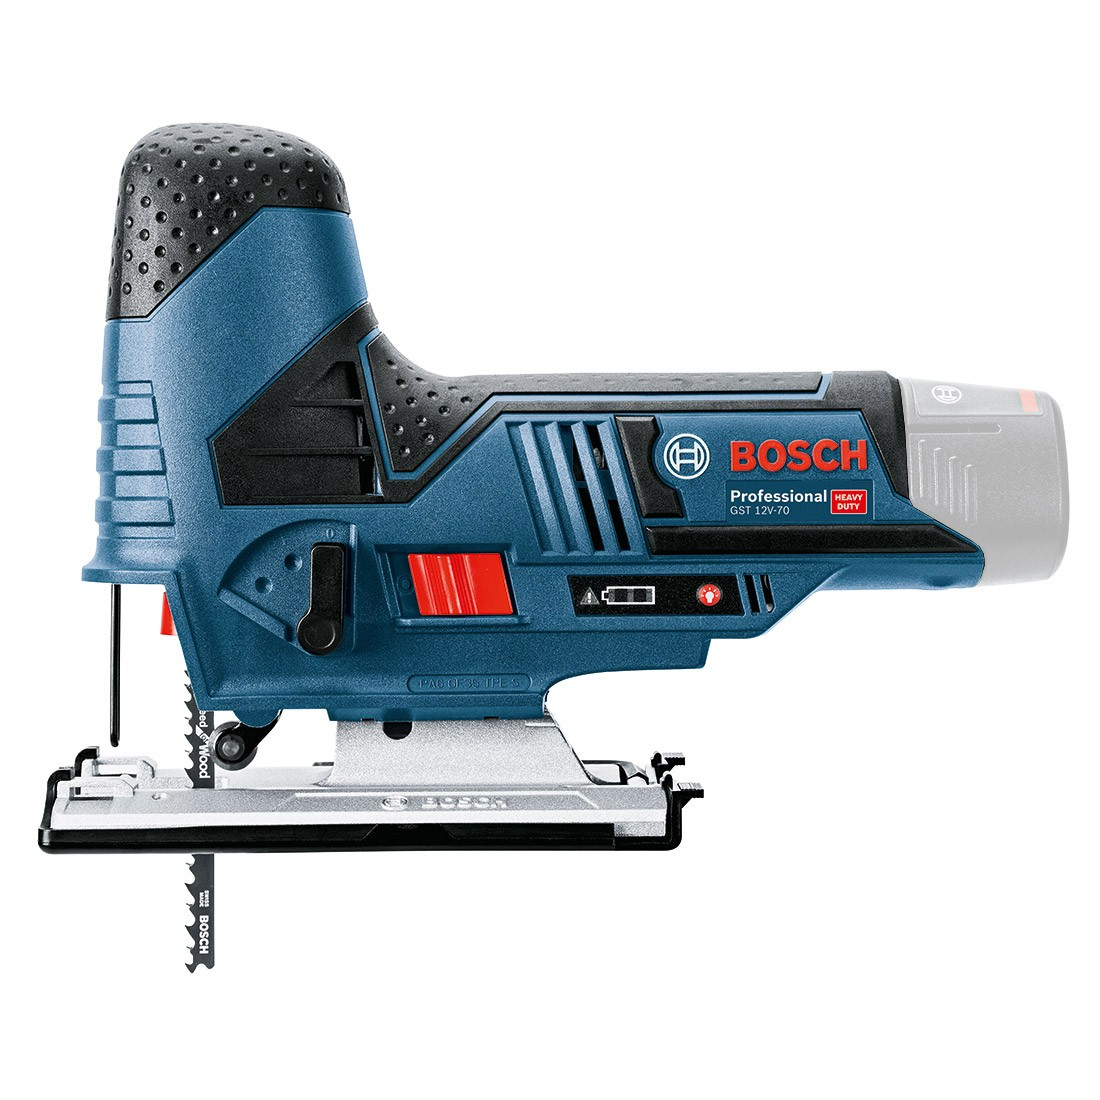 bosch gst 10 8 v li 12v 70 cordless jigsaw body only in carton powertool world. Black Bedroom Furniture Sets. Home Design Ideas